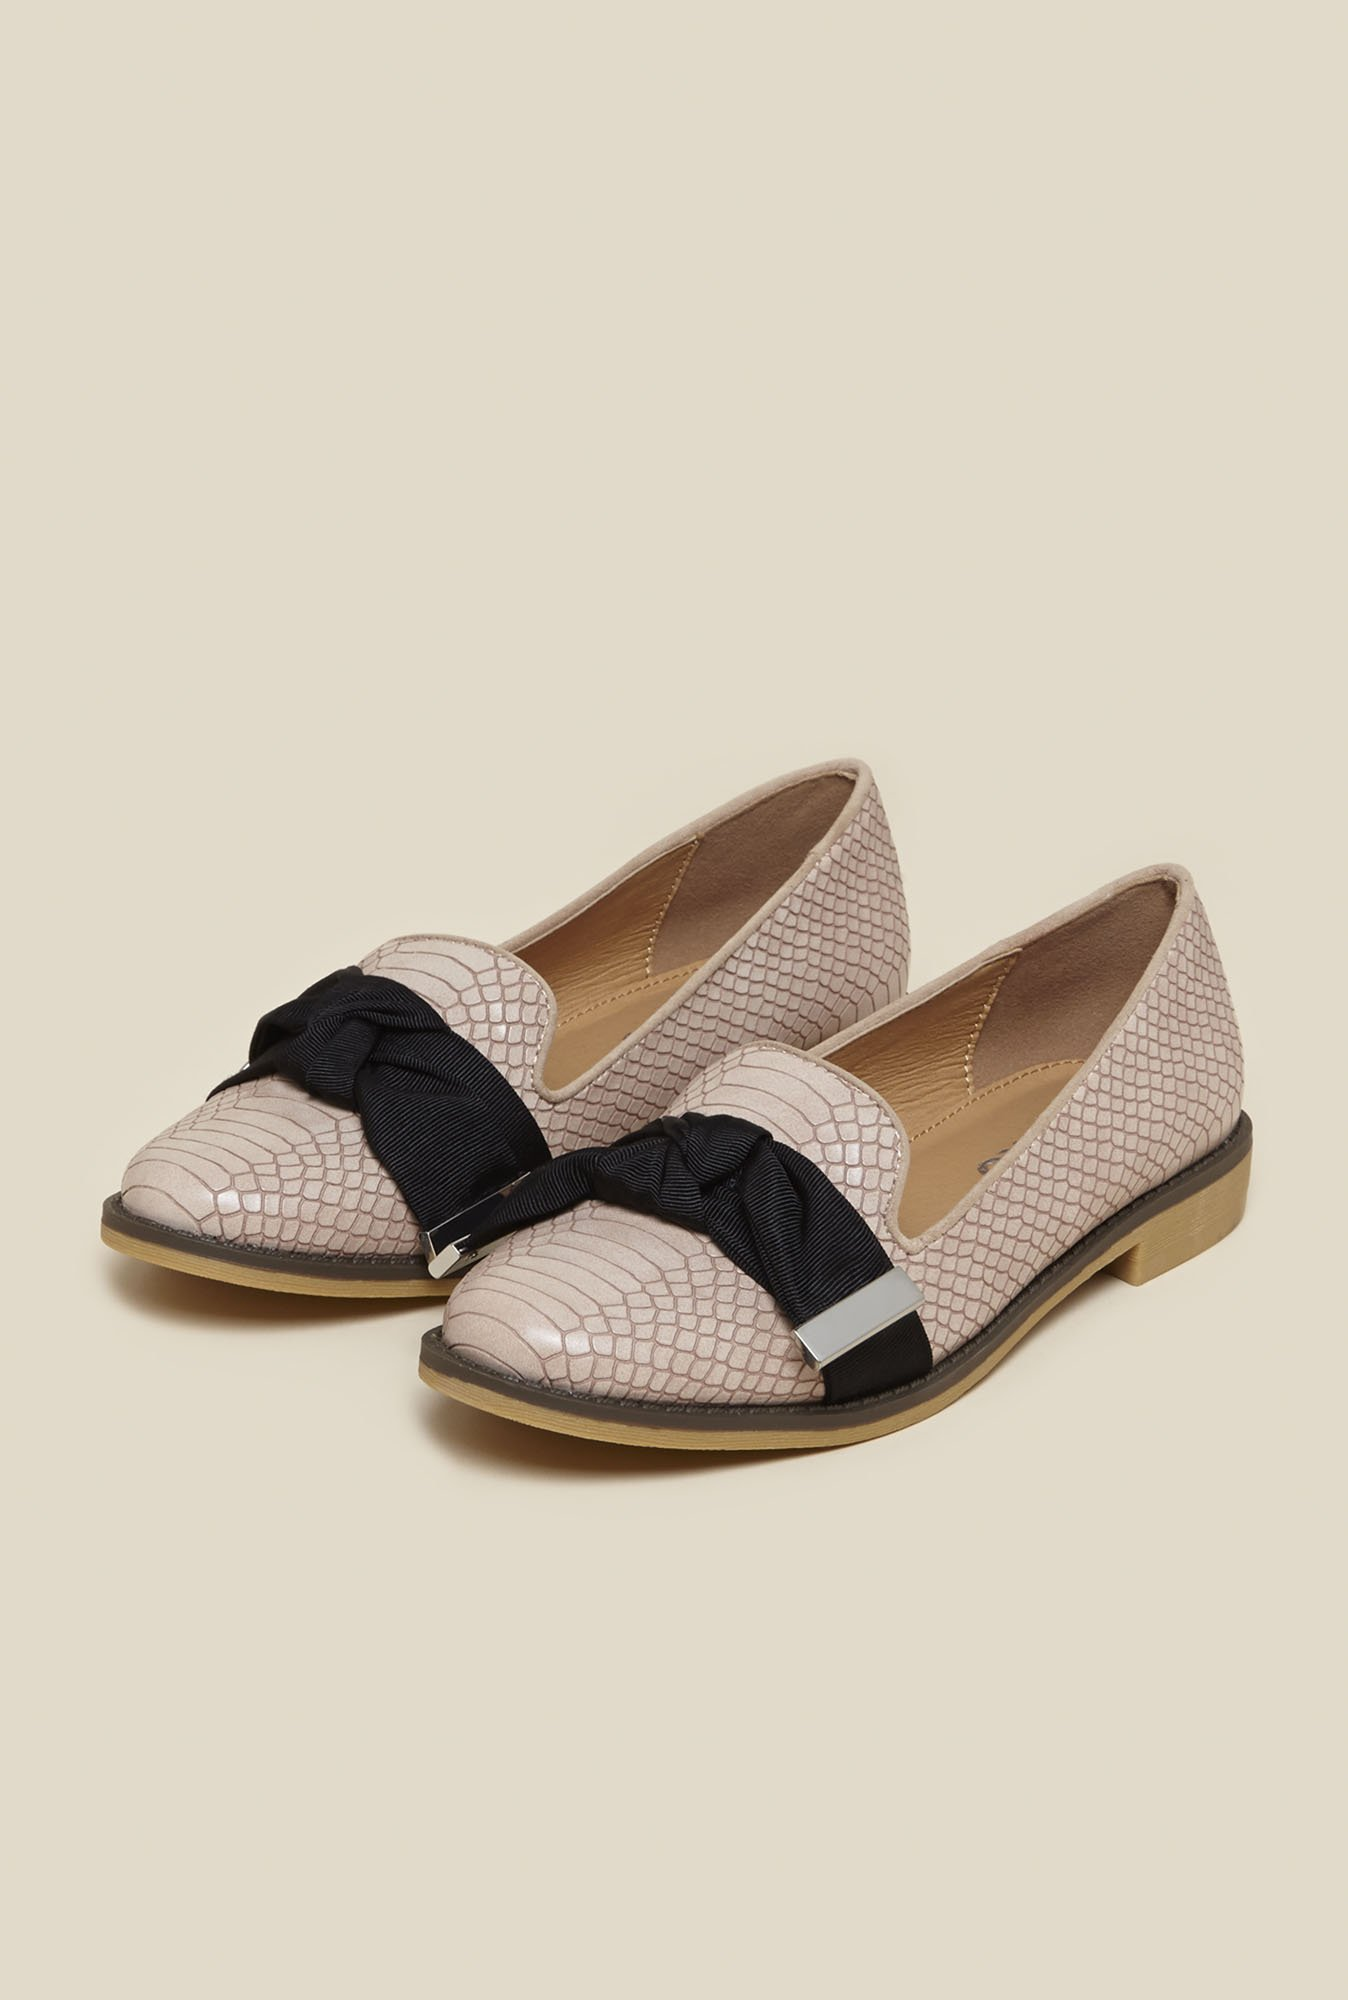 Miss KG by Kurt Geiger Nude Casual Loafers